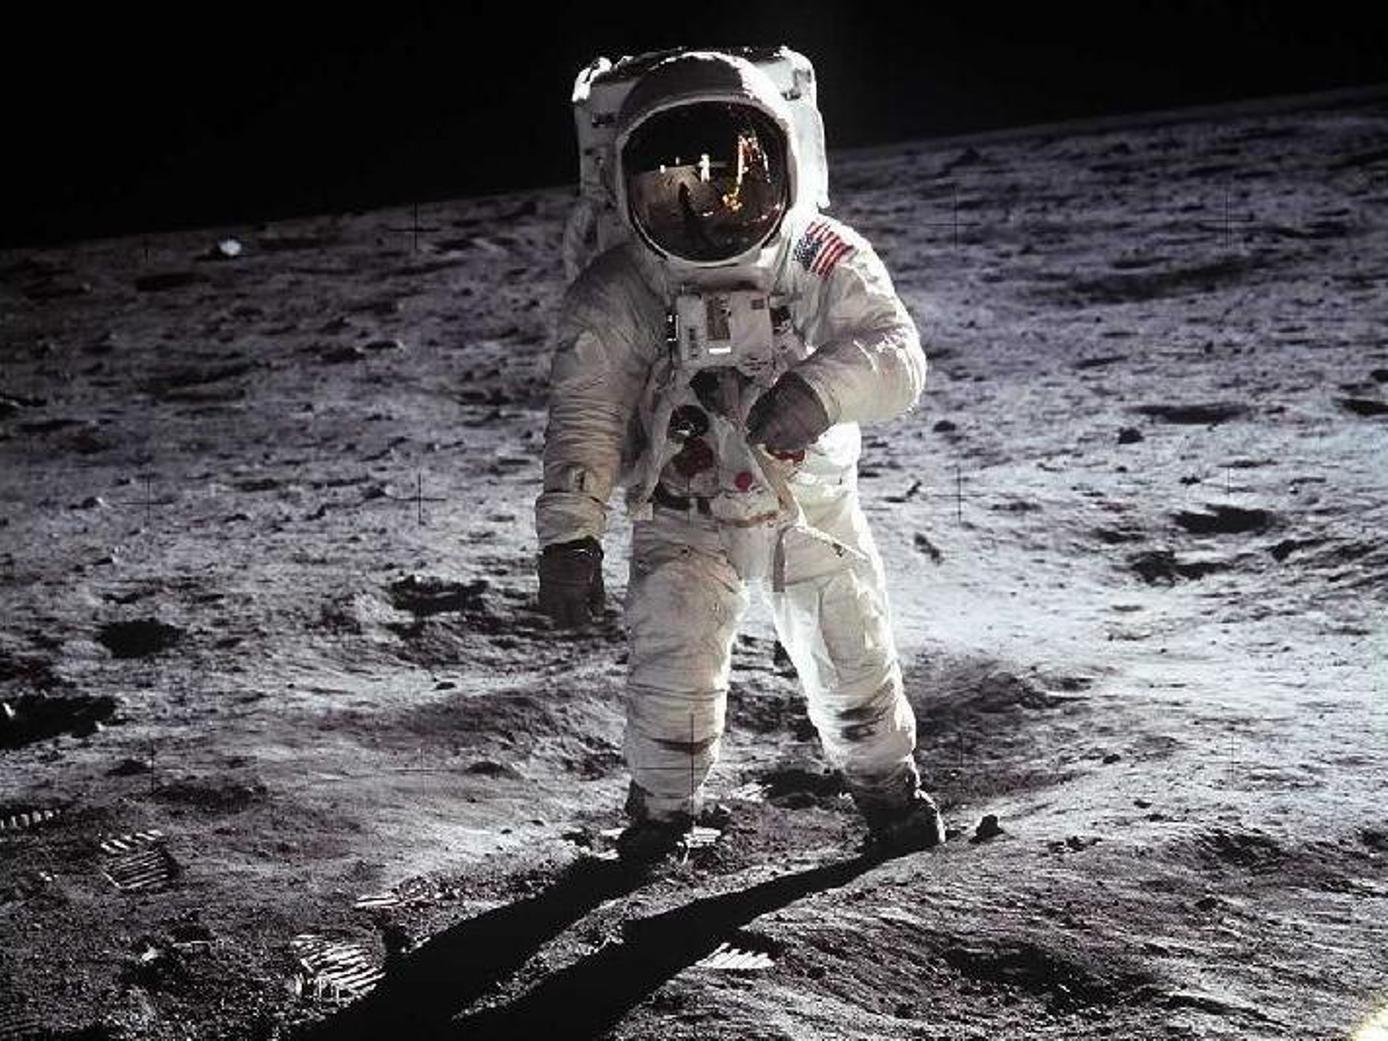 Authentic Footage Of Falling Astronauts Shows Moonwalking Is Tricky